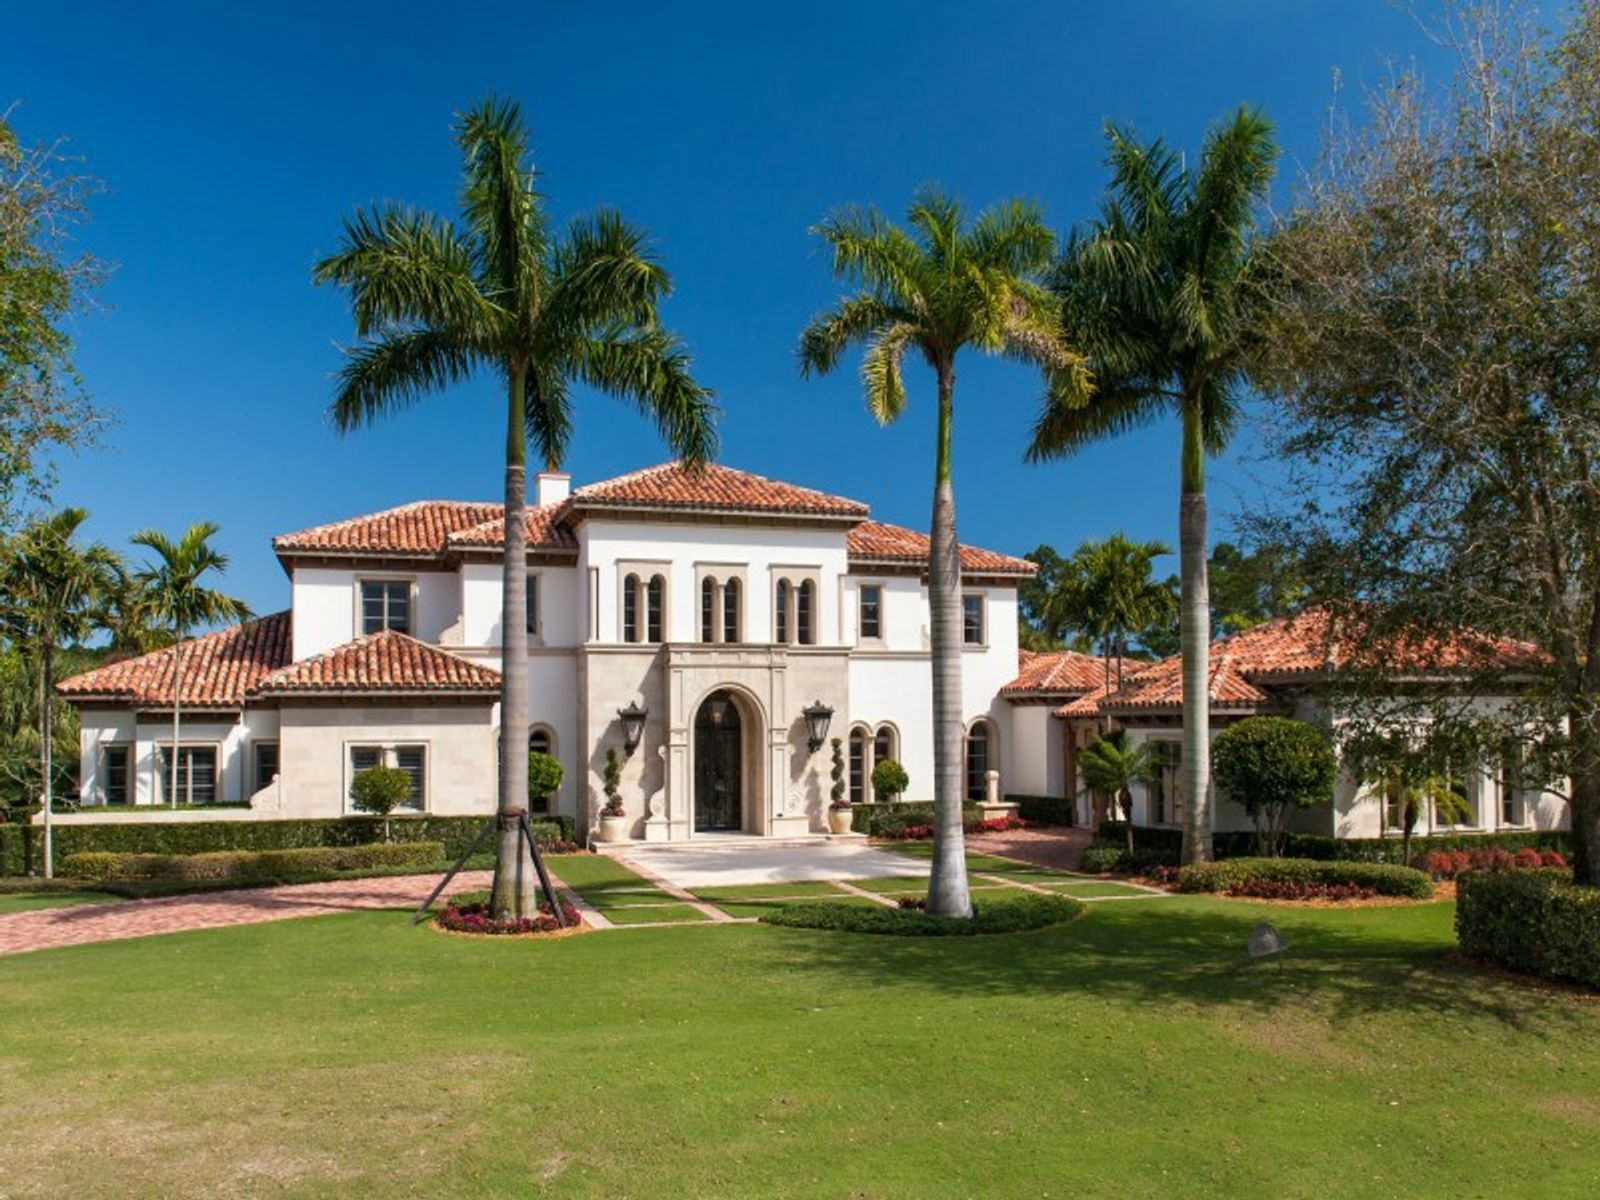 Bella Vita - Old Palm Golf Club, Palm Beach Gardens FL Single Family Home - Palm Beach Real Estate